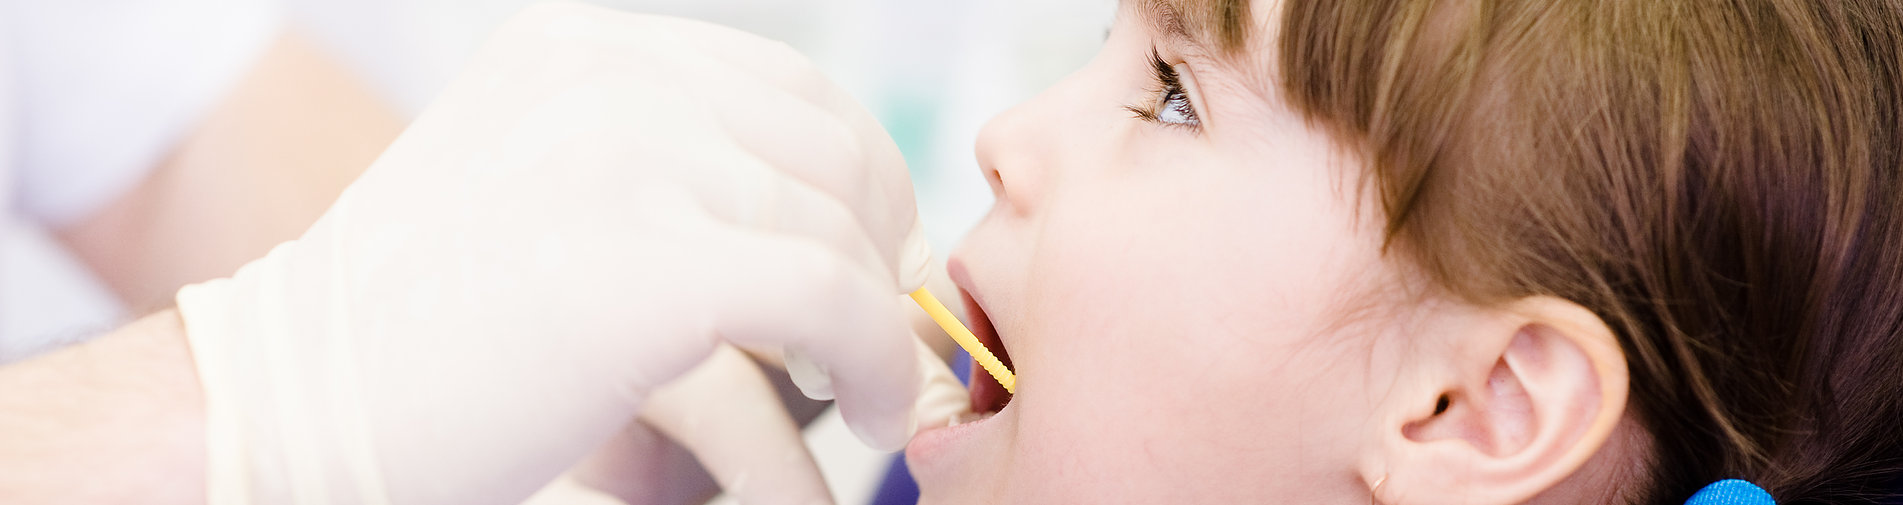 ABOUT GOLDEN STATE DENTISTRY